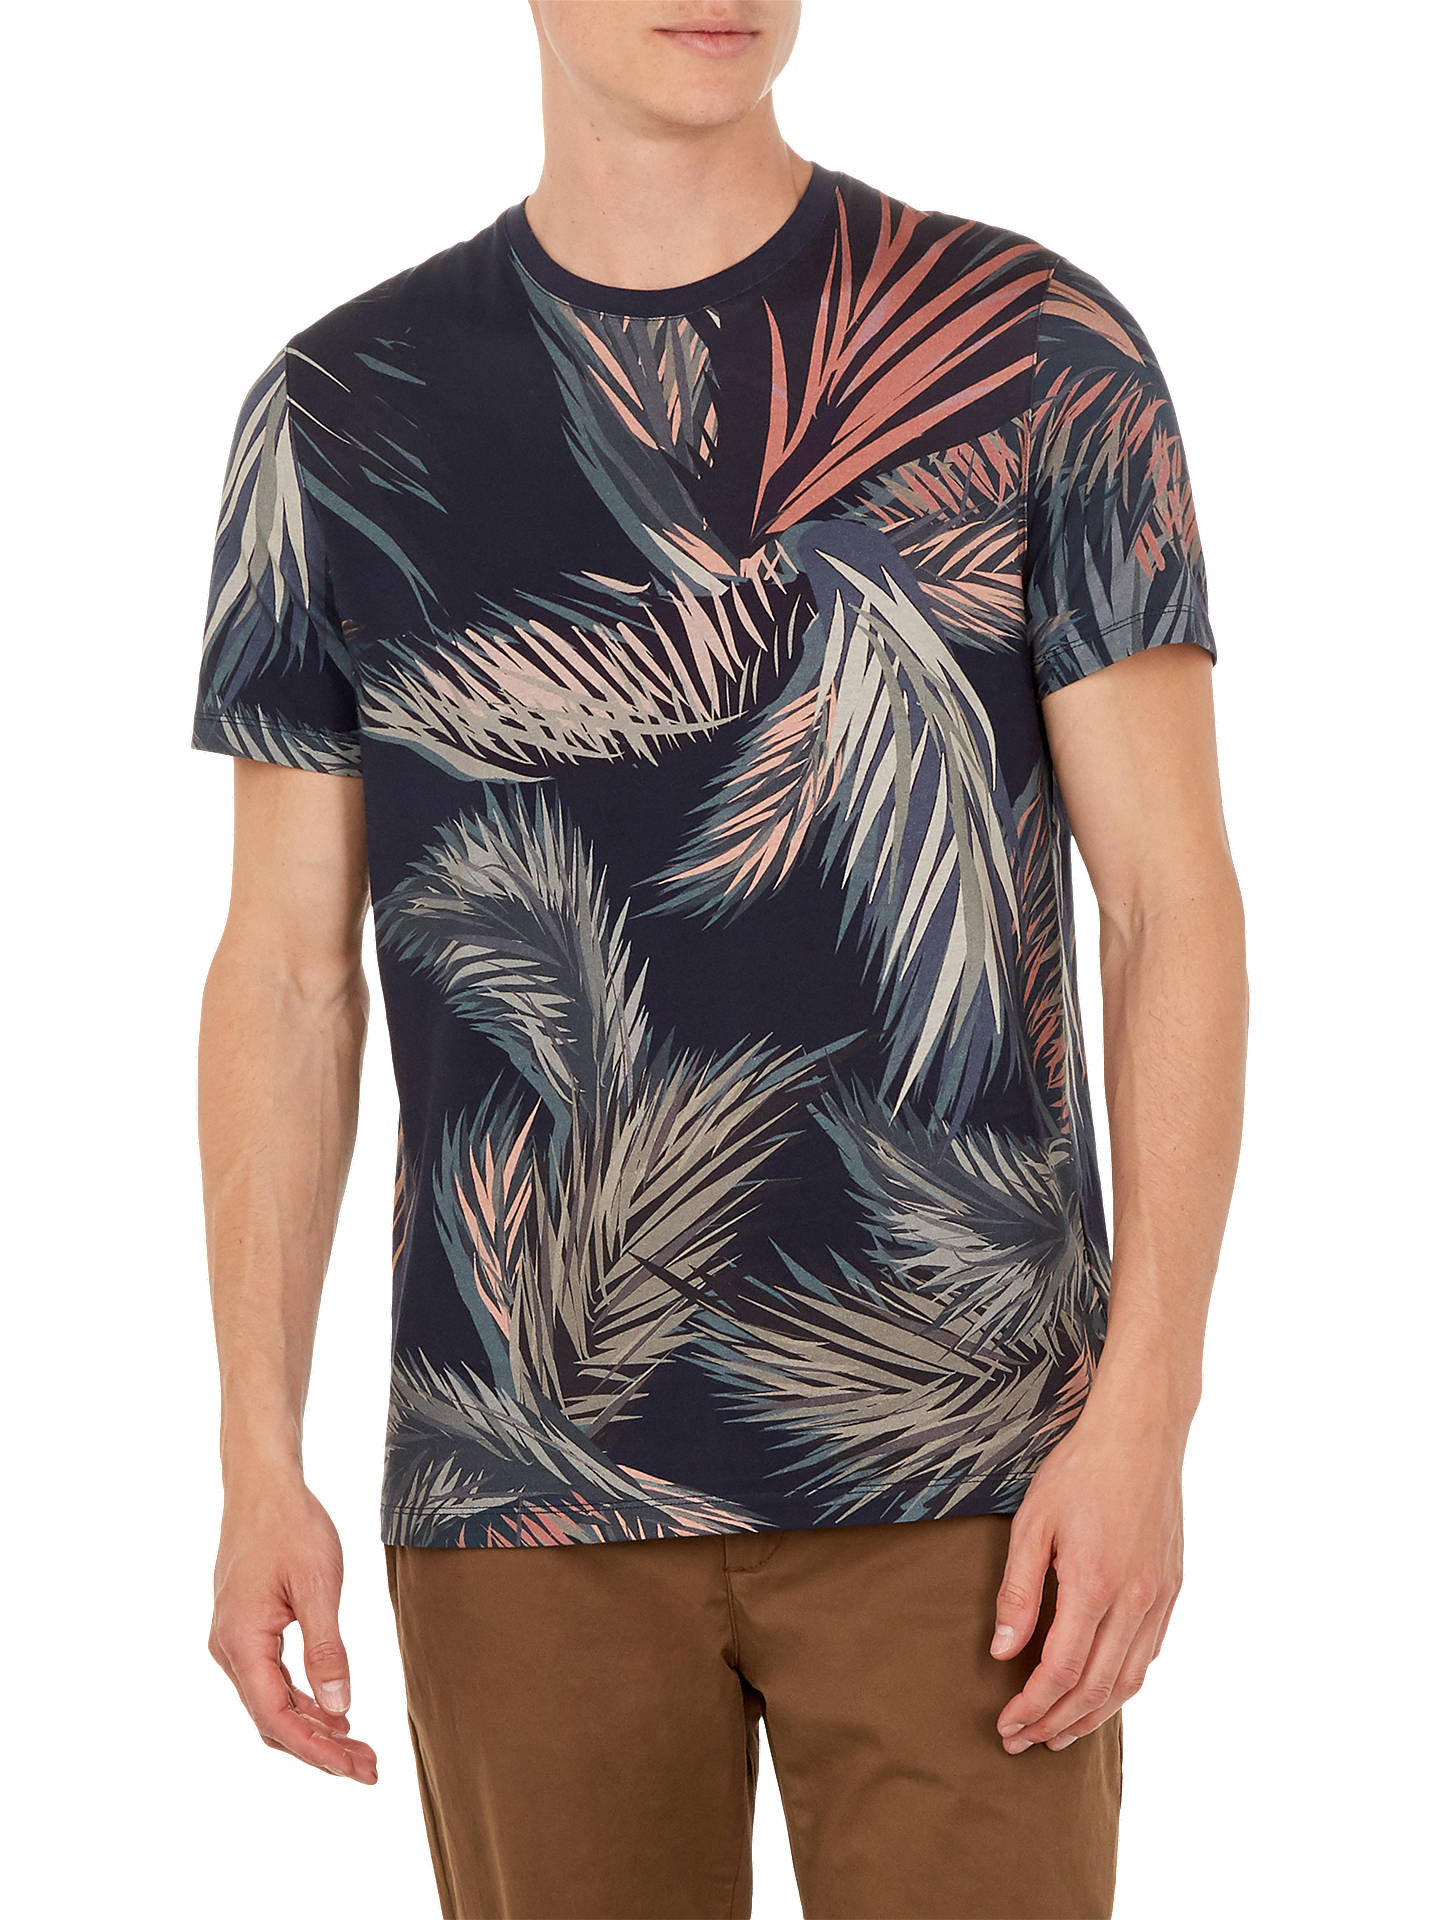 98d106ab7 Buy Ted Baker Pencil Leaf Print Cotton T-Shirt